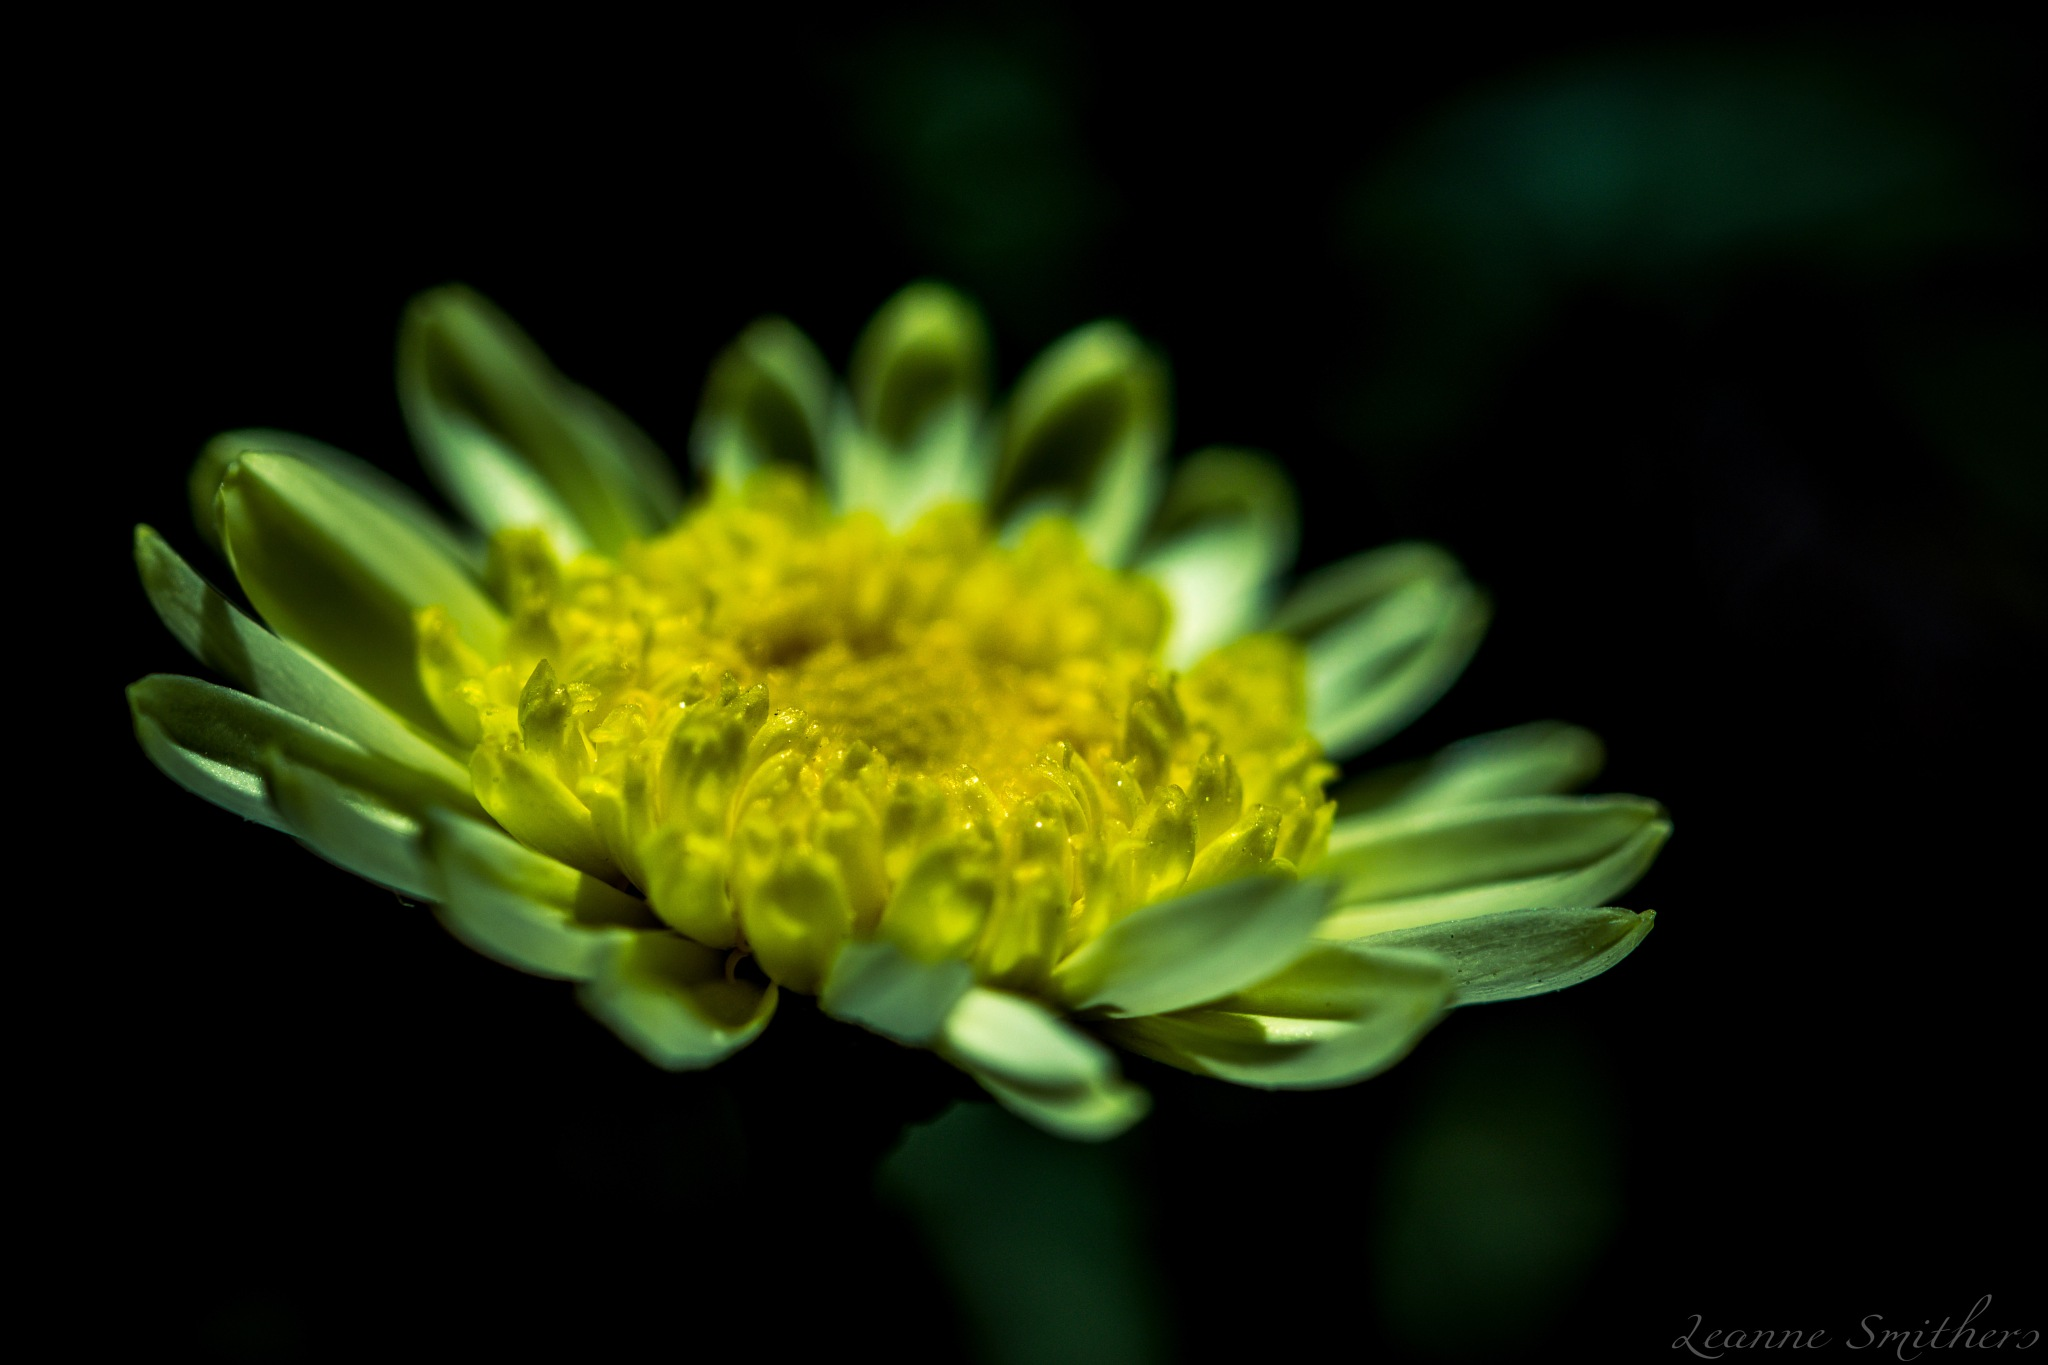 Daisy by Leanne Smithers